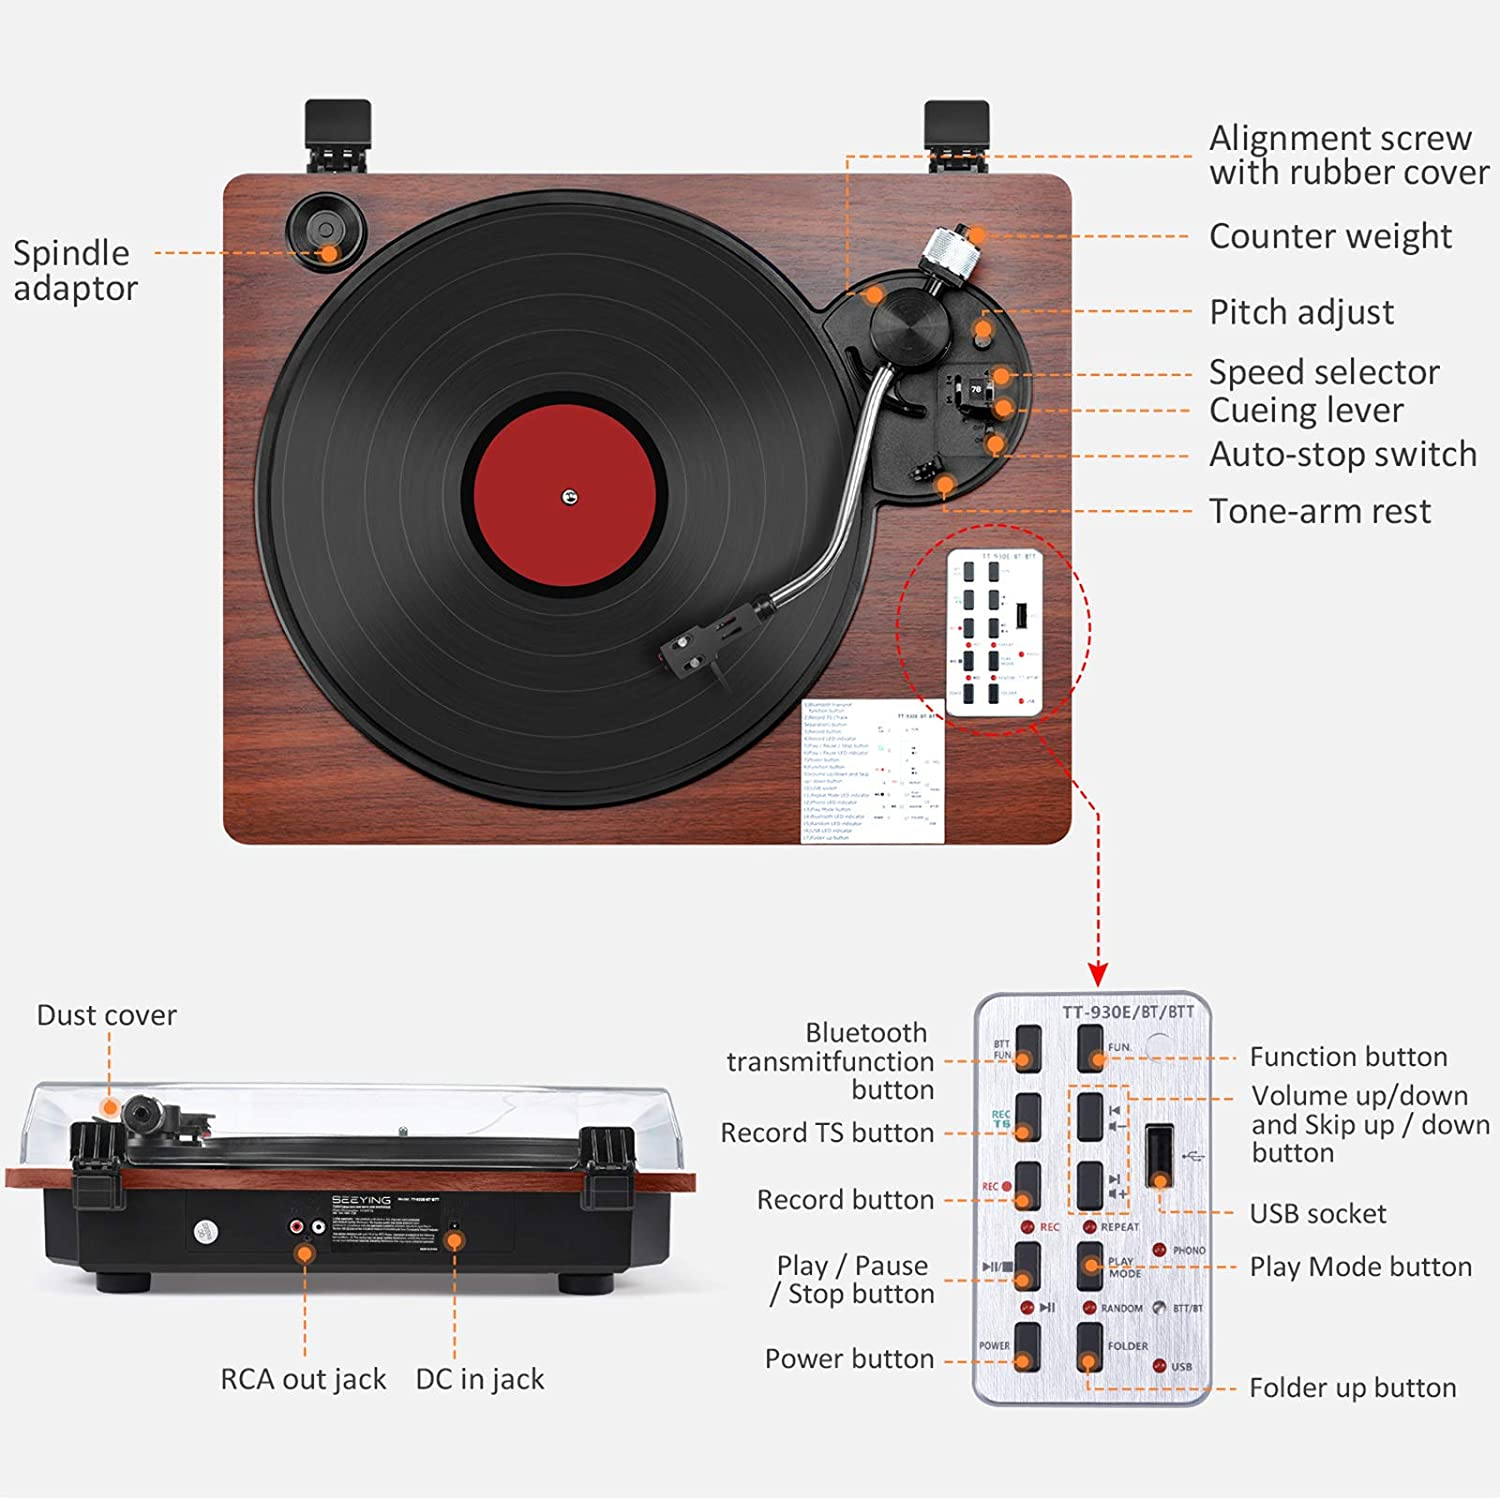 Record Player with Speakers Turntable for Vinyl Records Bluetooth Input /& Output USB Direct Vinyl to MP3 Recording Pitch /& Counterweight Adjustment 3 Speed Vintage Vinyl Record Player